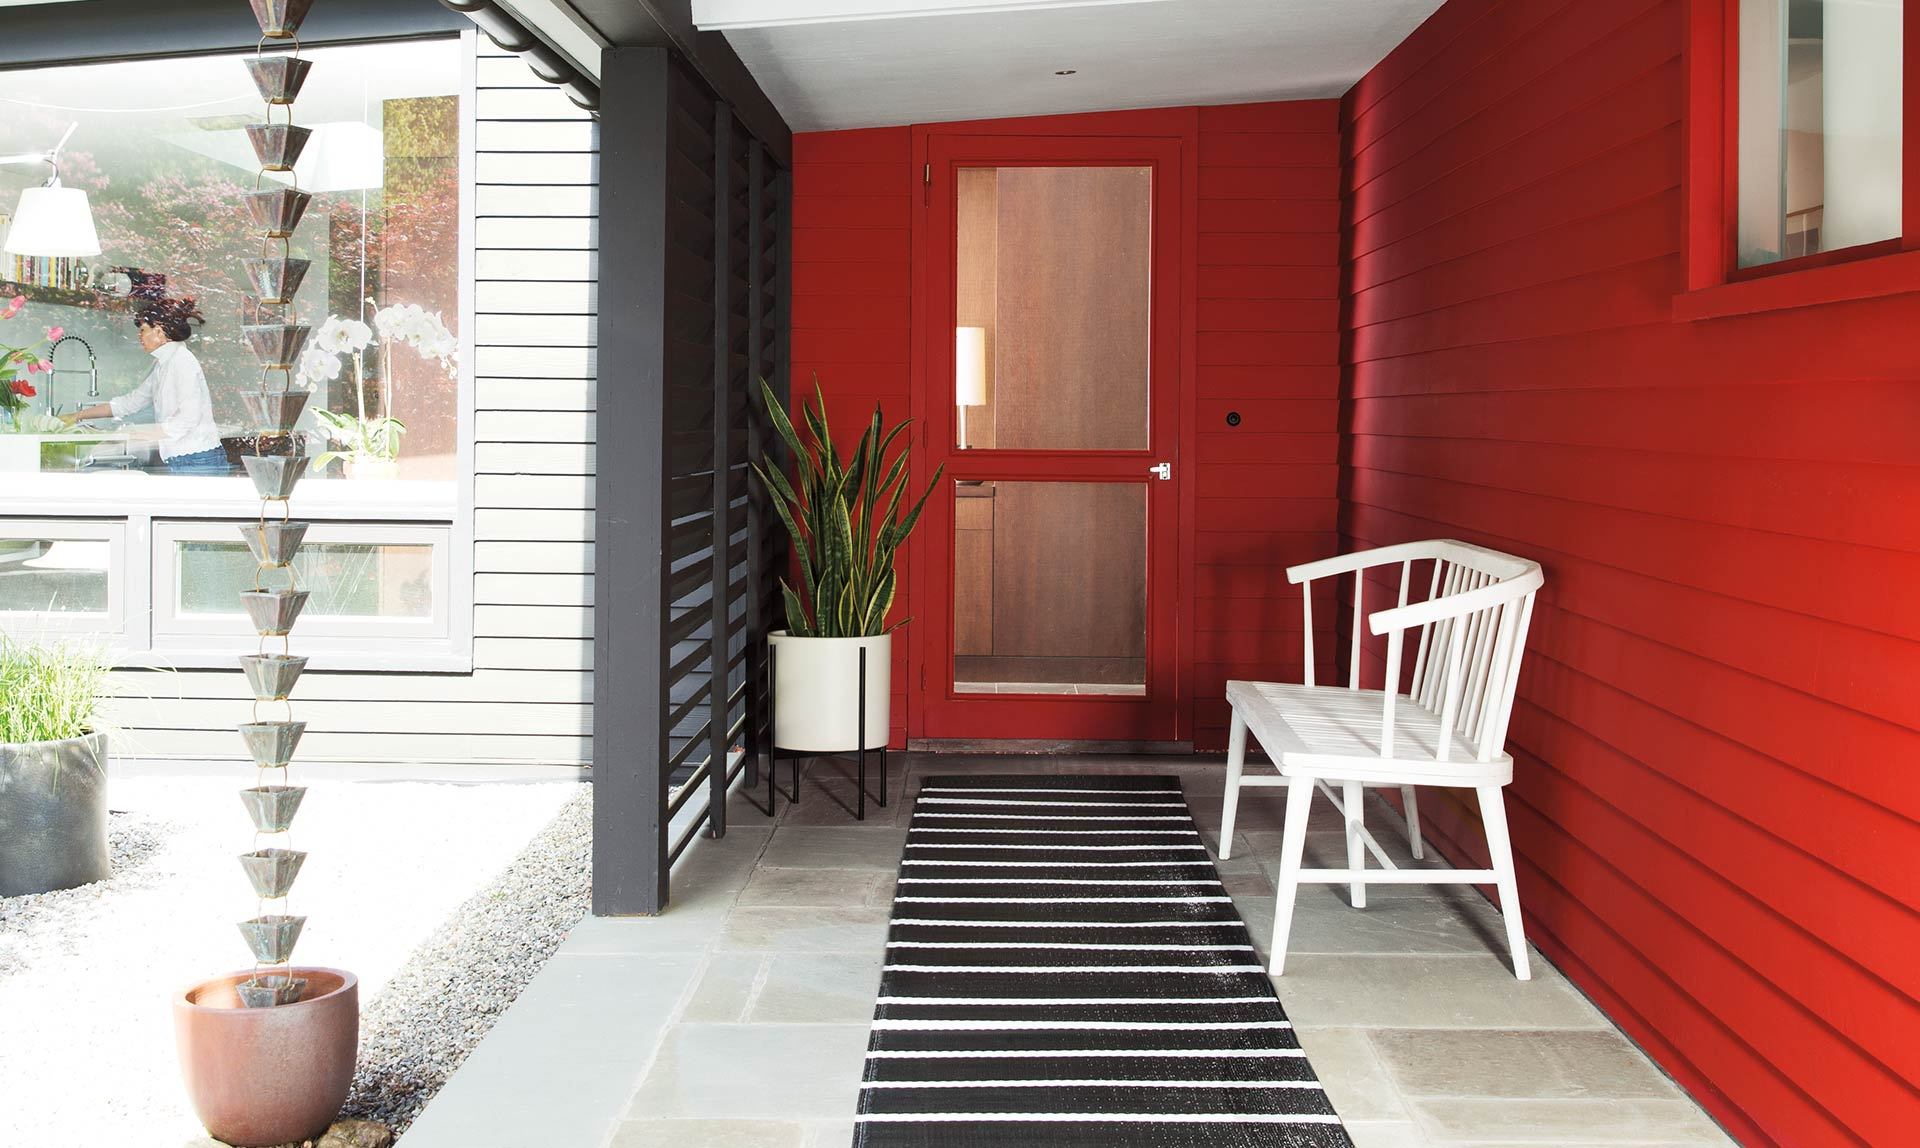 Showcase your COLOR CONFIDENCE with Caliente AF-290 for an entrance packed with personality.